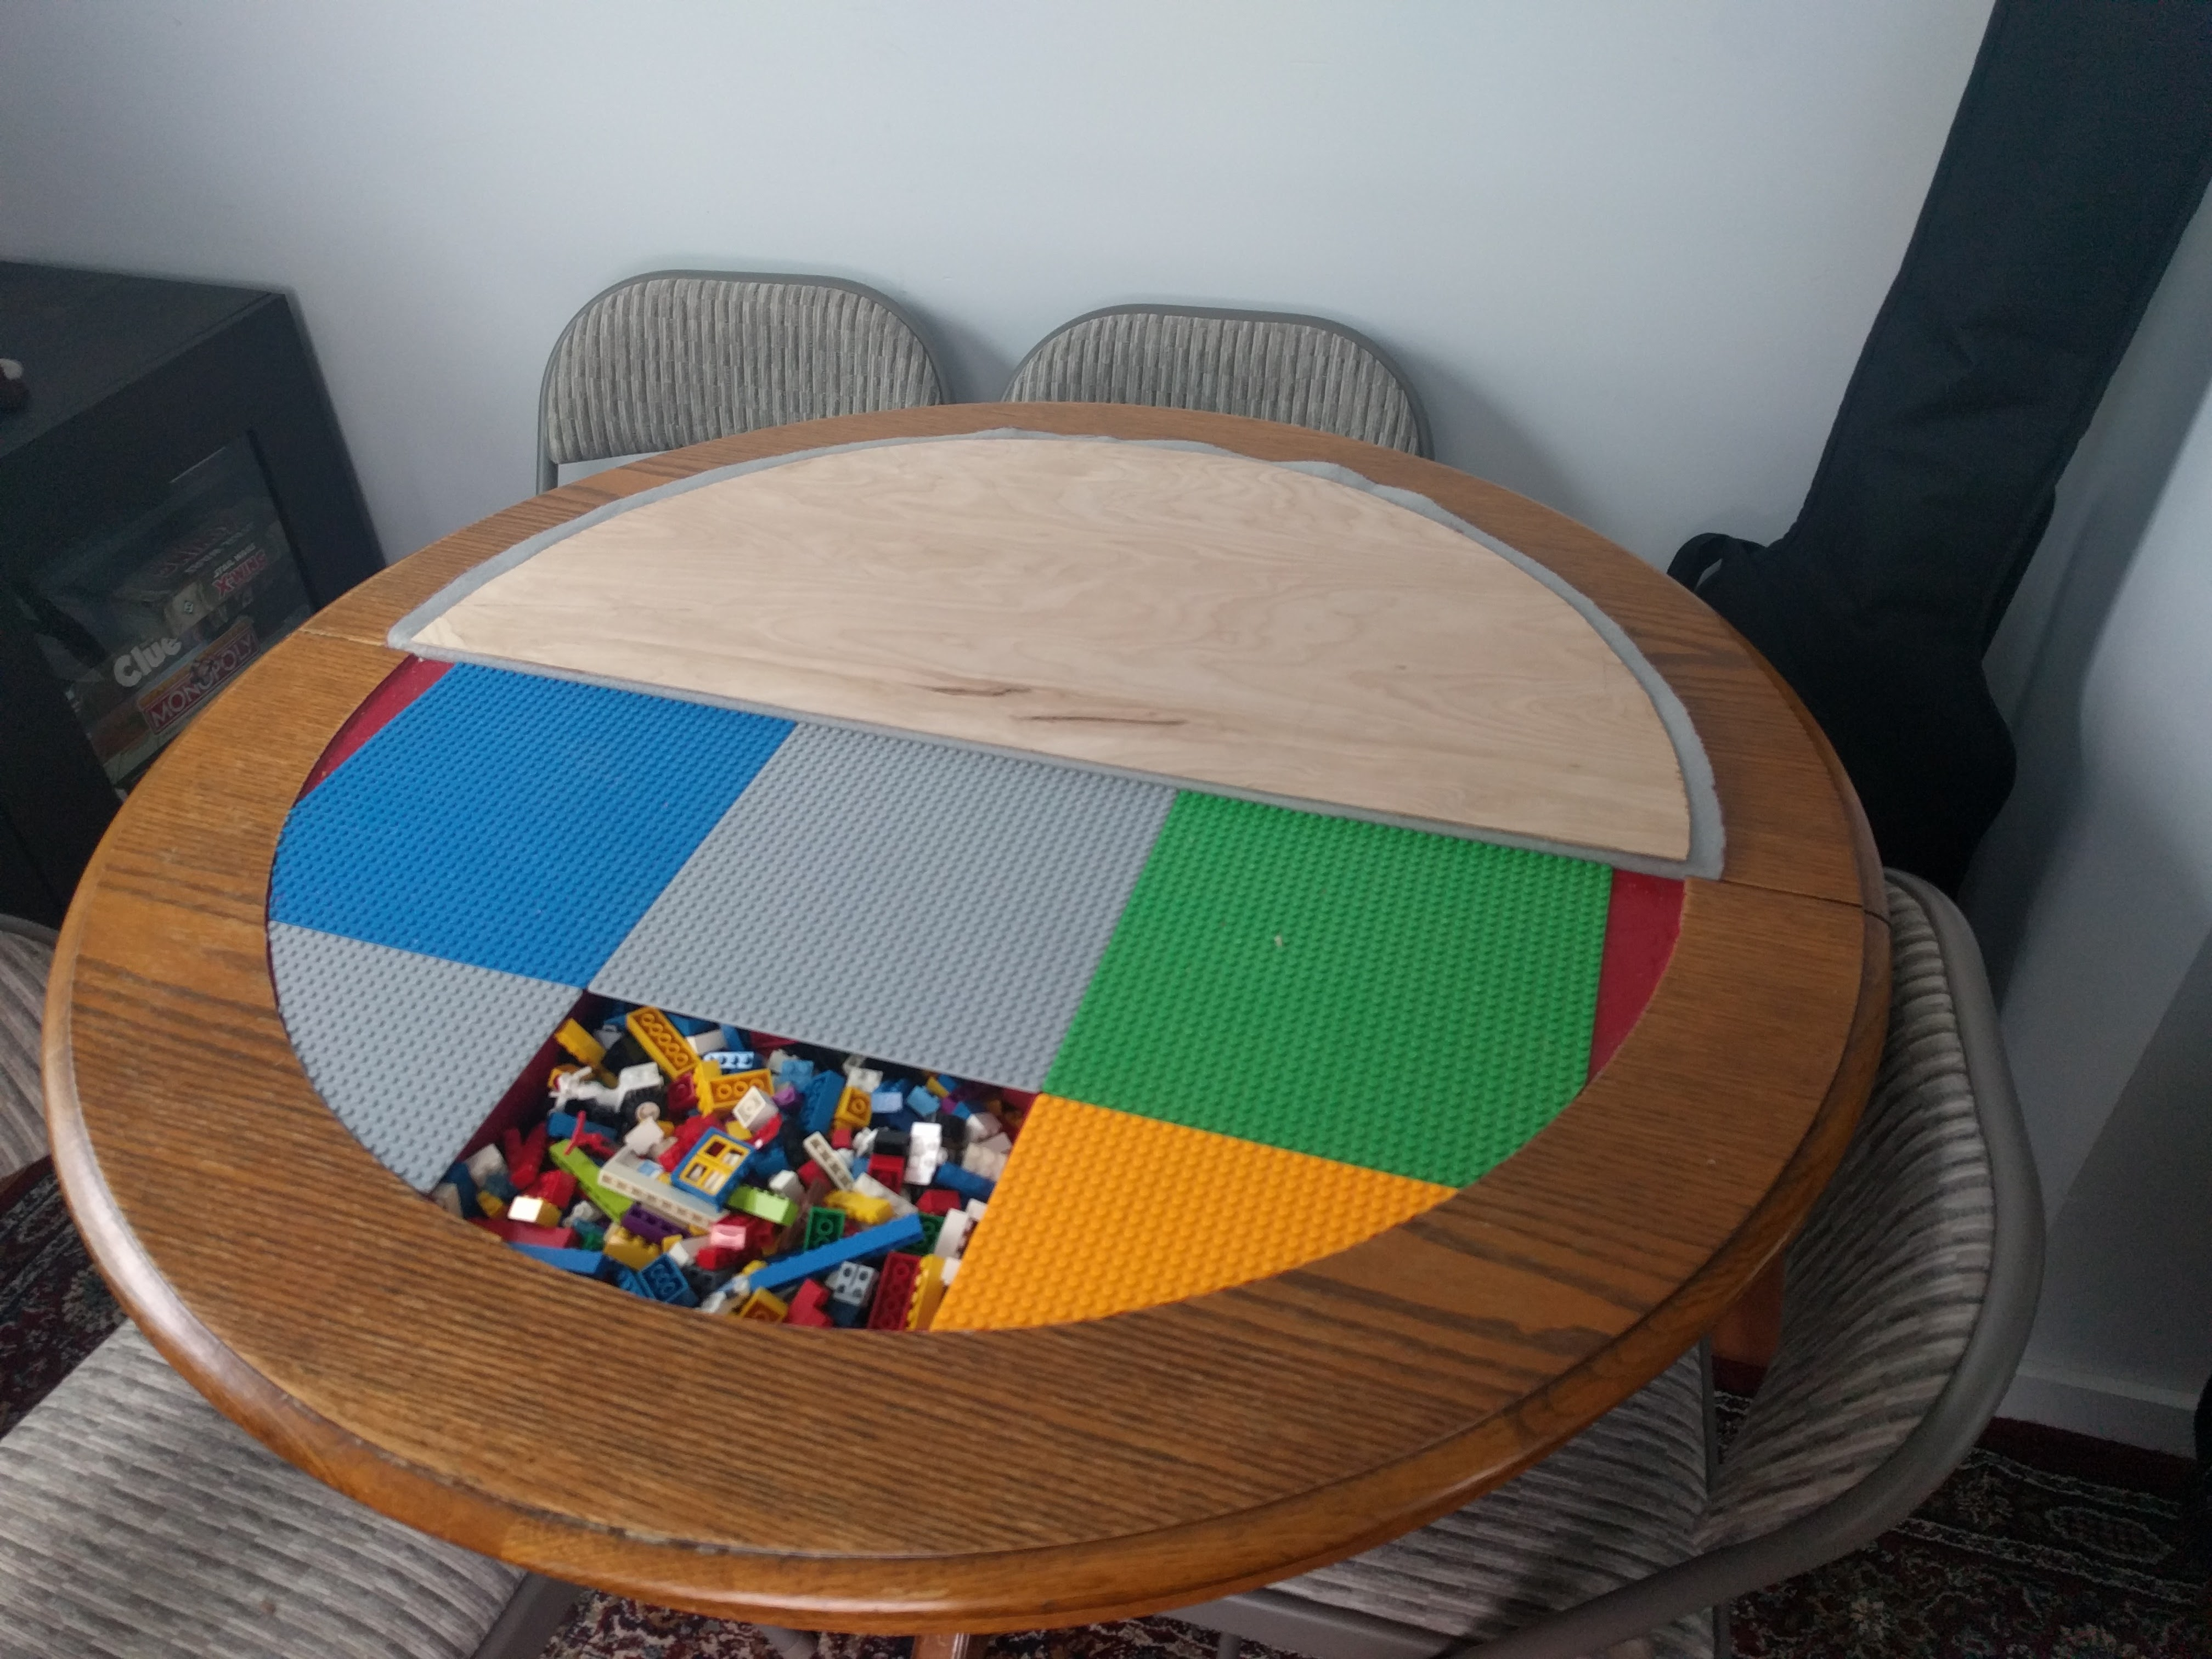 Easy access to legos means you can still have fun when you've been drinking too much to play board games!